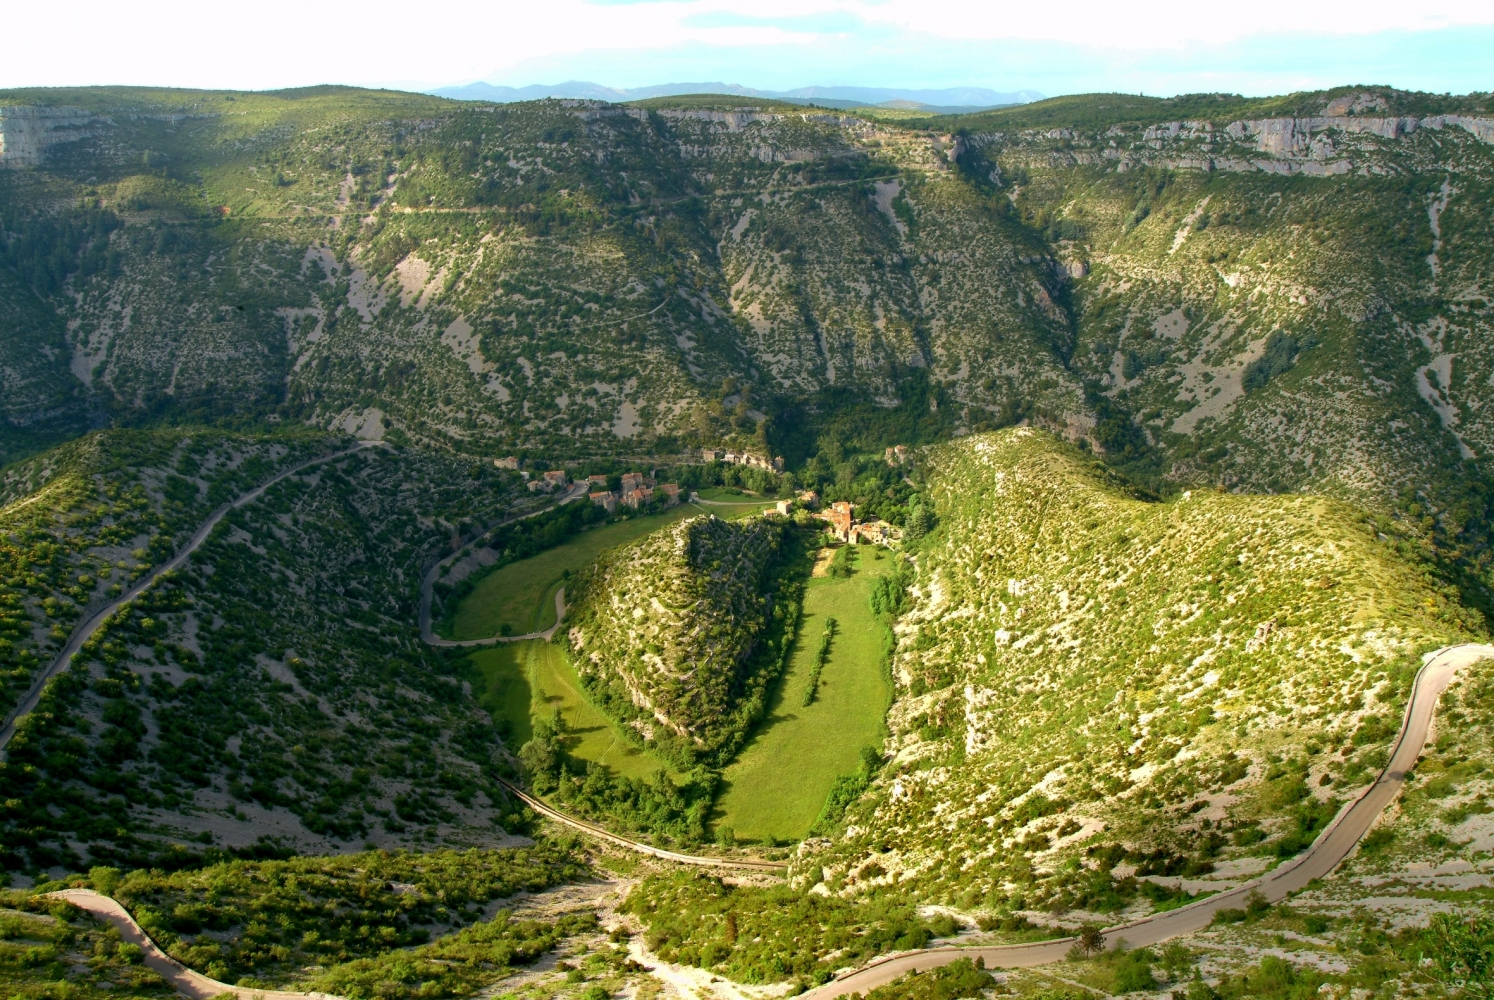 The Cirque de Navacelles